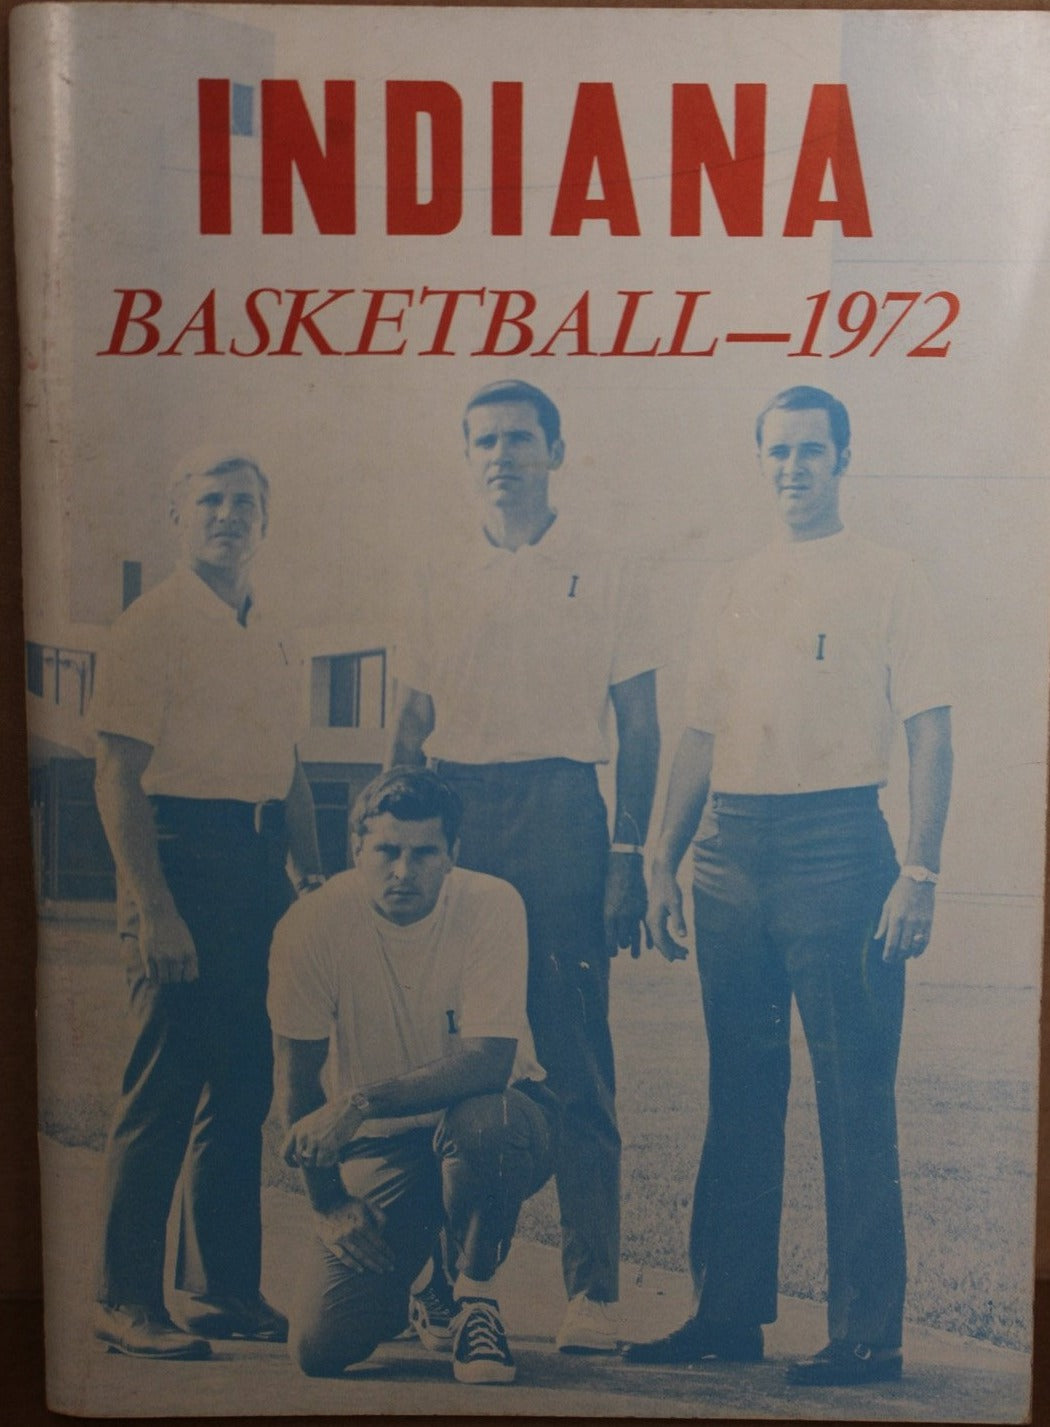 1972 Indiana Basketball Media Guide, Bob Knight's 1st Year - Vintage Indy Sports